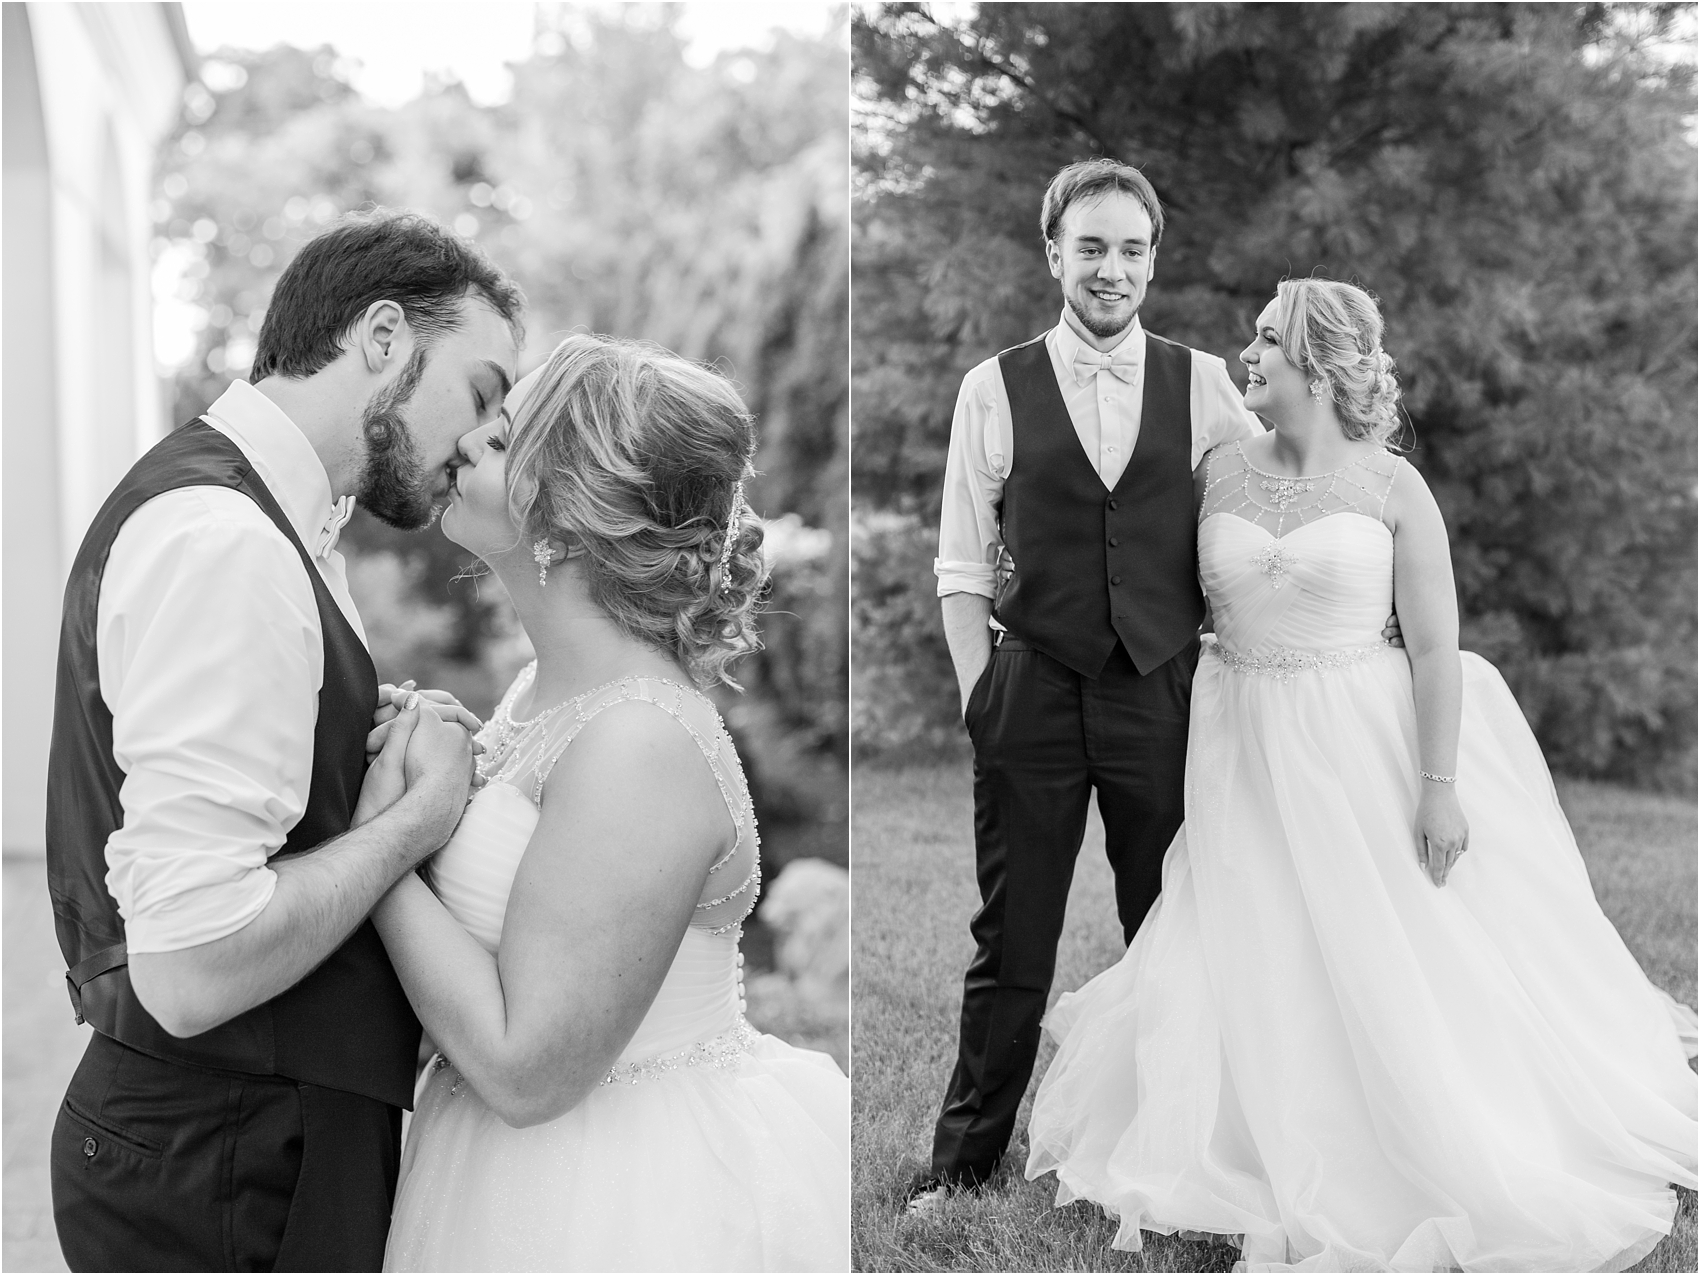 lord-of-the-rings-inspired-wedding-photos-at-crystal-gardens-in-howell-mi-by-courtney-carolyn-photography_0117.jpg